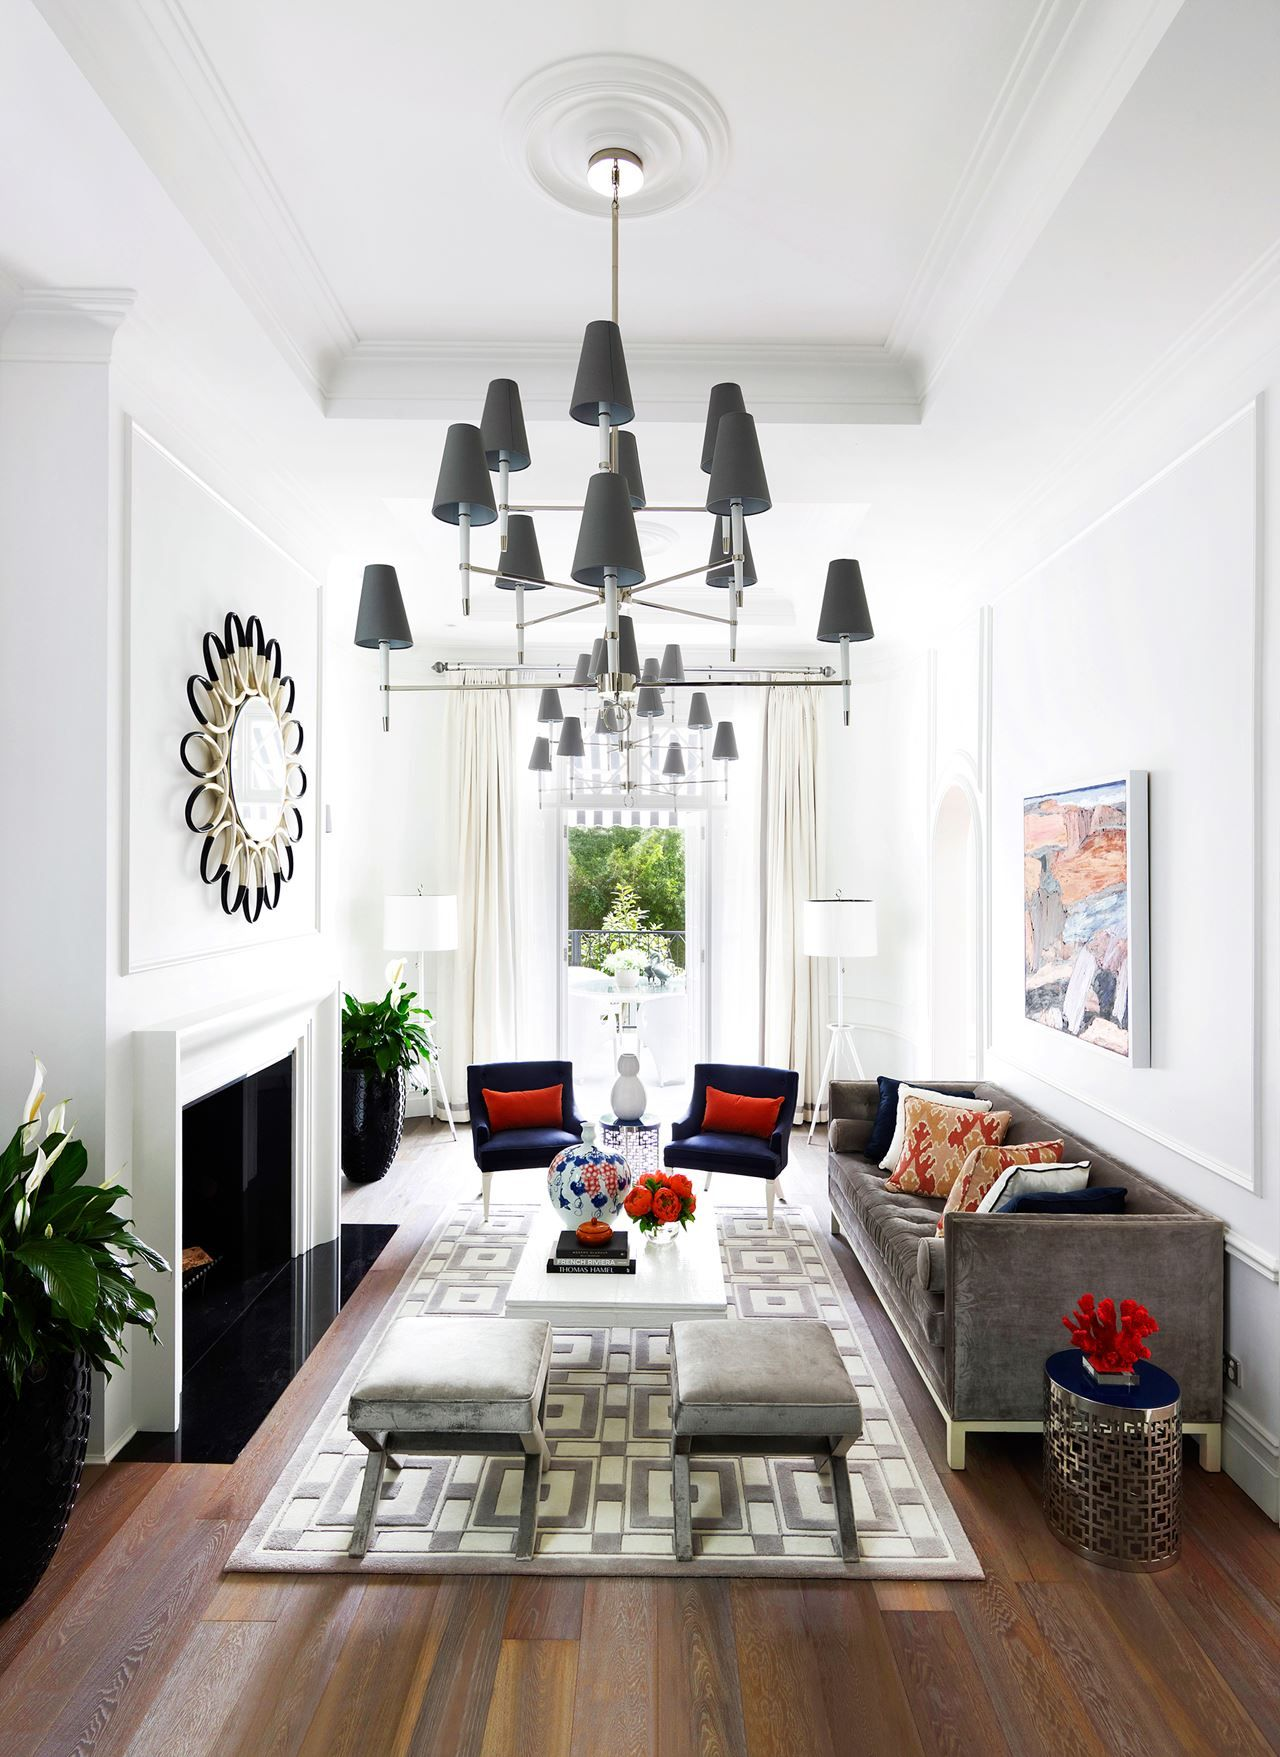 Design Narrow Living Room: Emma And Toni's Luxurious Regency-Style Home